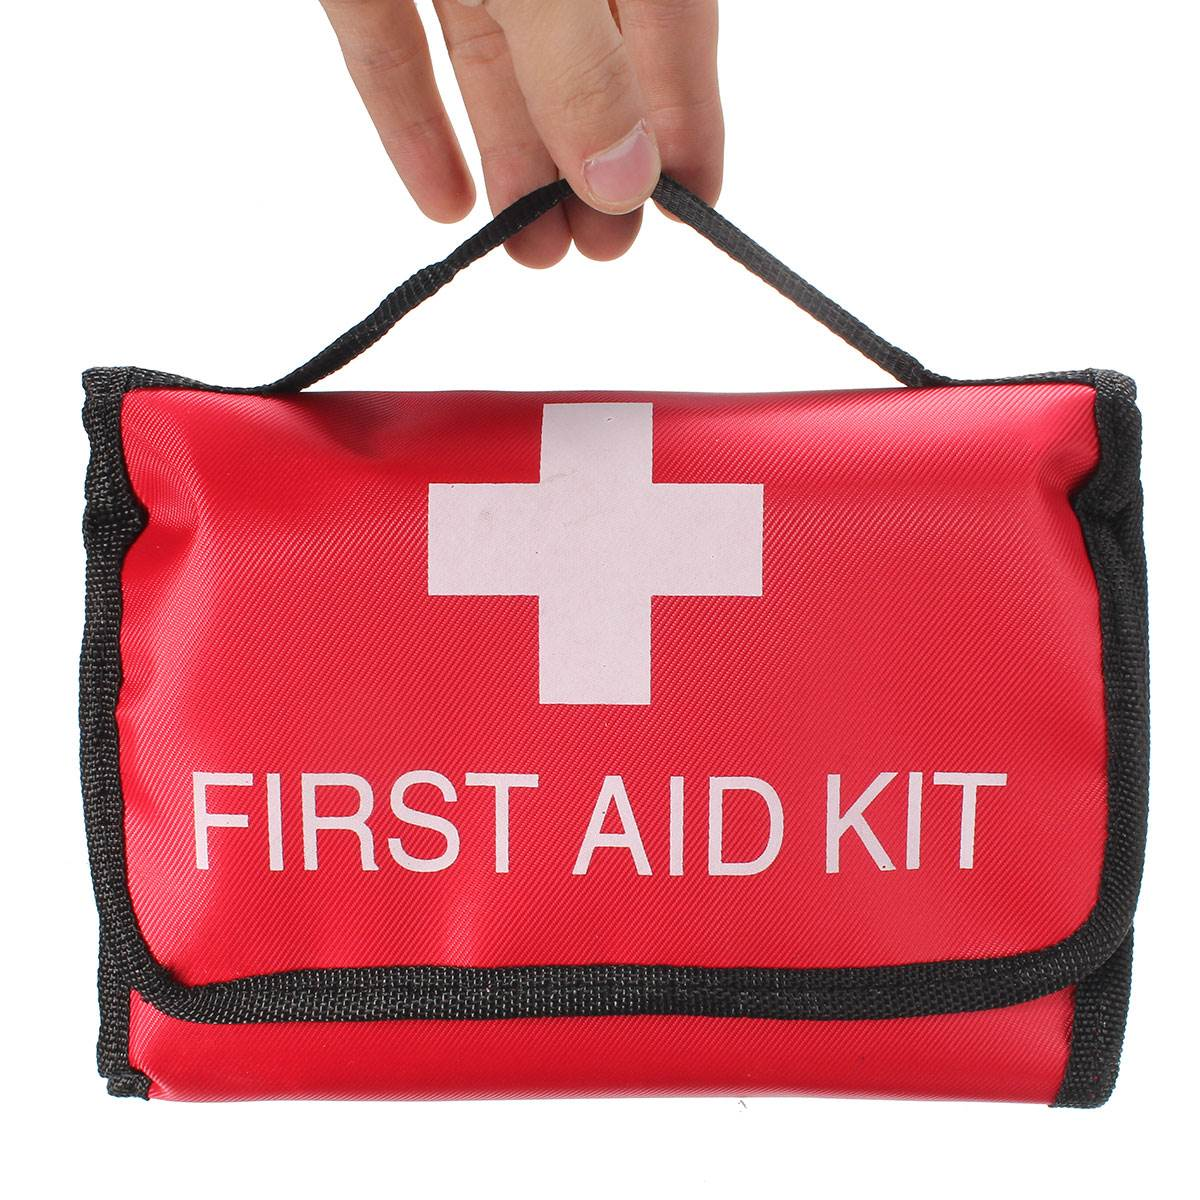 NEW 1set Outdoor Survival First Aid Kit Medical Bag Rescuing Equipment Camping Hiking Medical Emergency Treatment Packs first aid kit medical bag tactical first aid bag for travel camping hiking emergency survival outdoor sport bag multifunctional